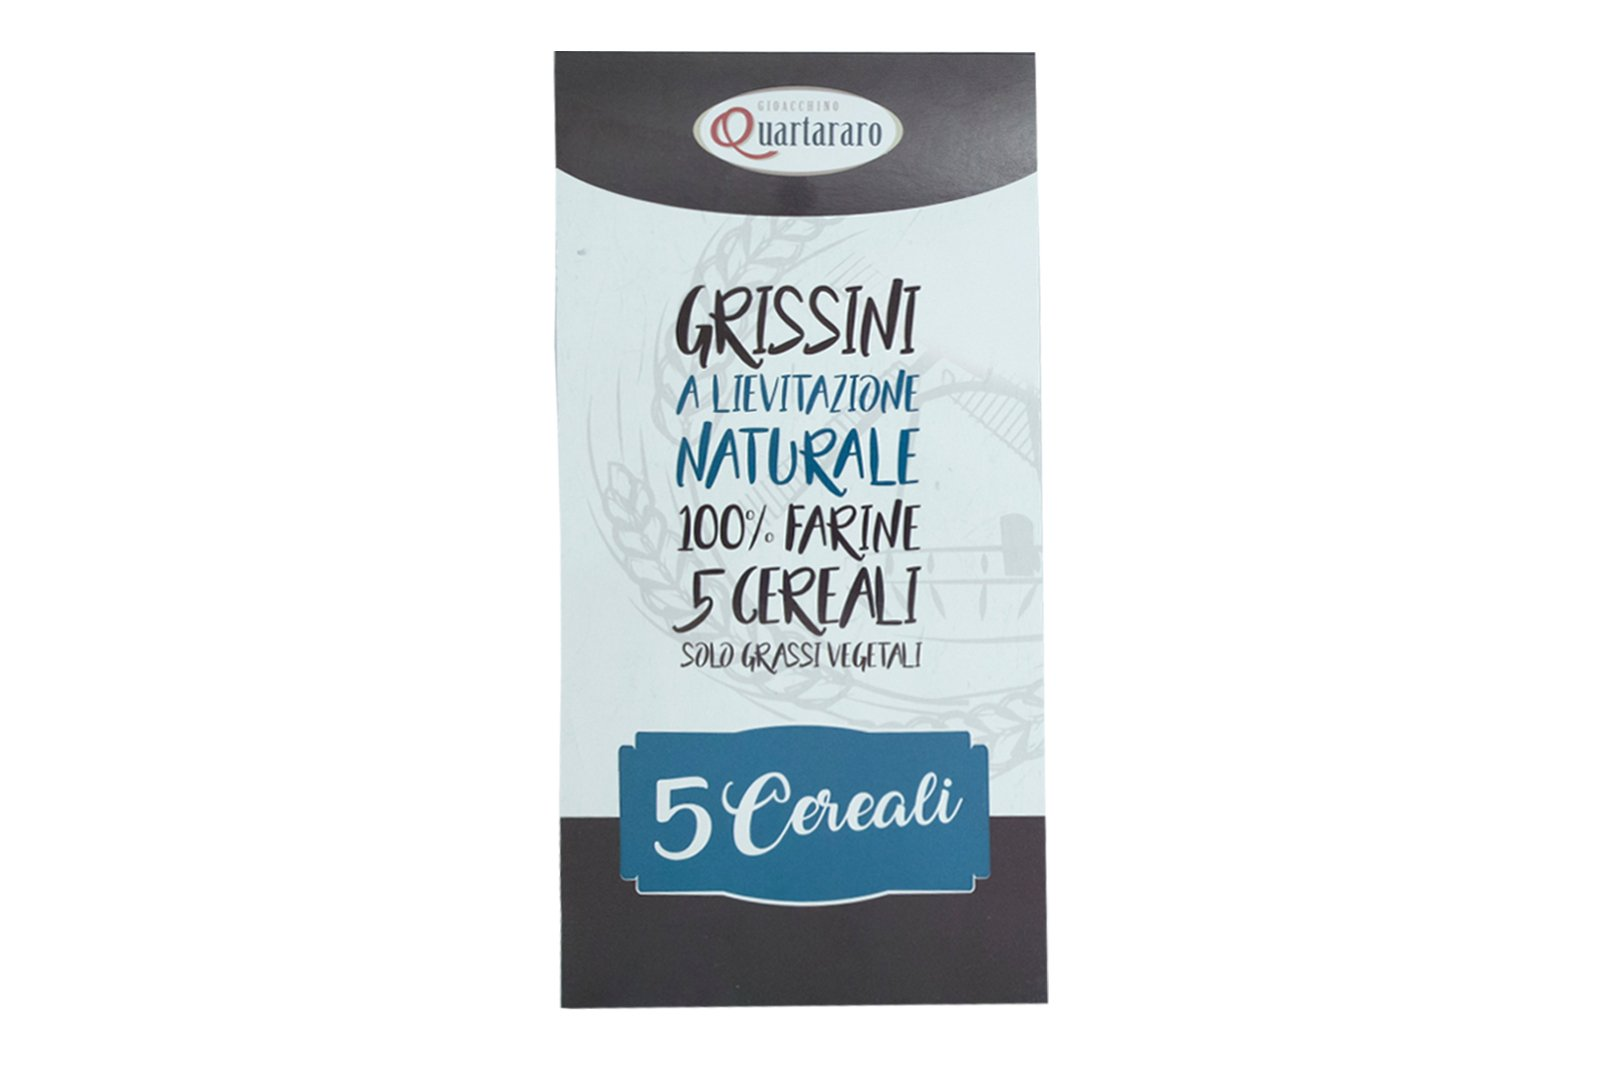 packaging grissini ai 5 cereali